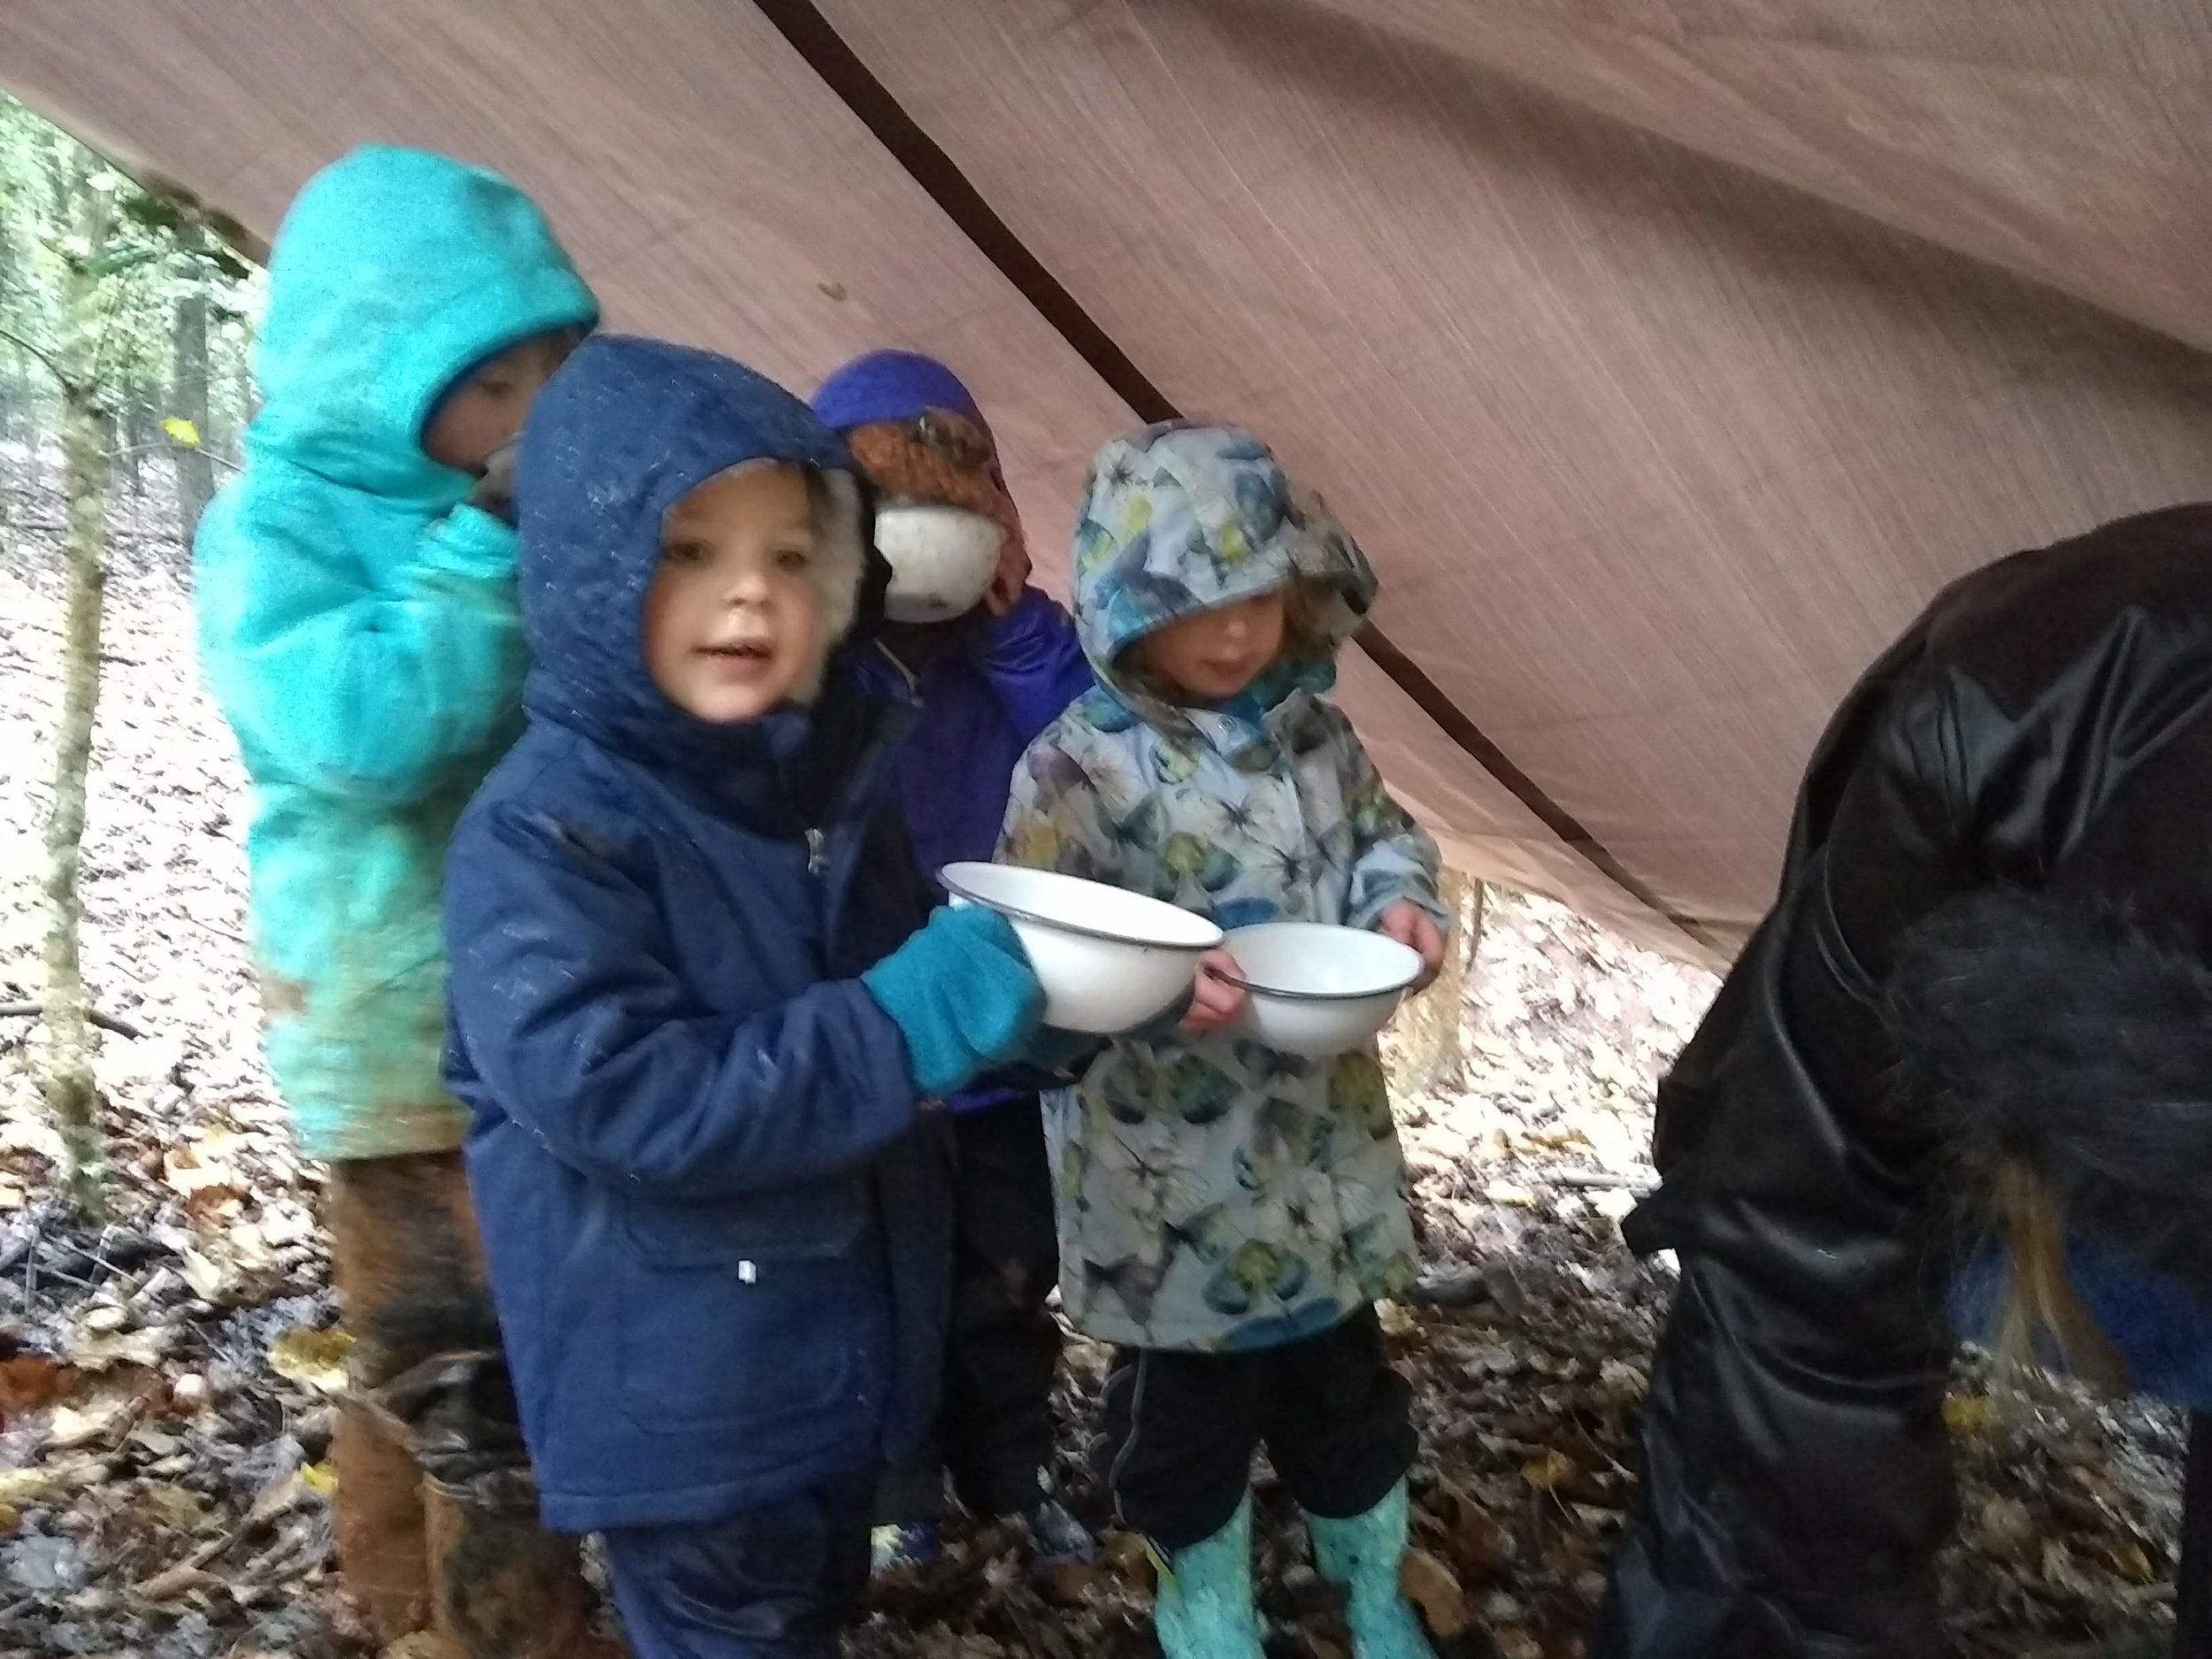 Nothing brings people together like getting out of the elements for a nice warm snack! We've witnessed new friendships blooming with the break in routine the rainy weather has brought.